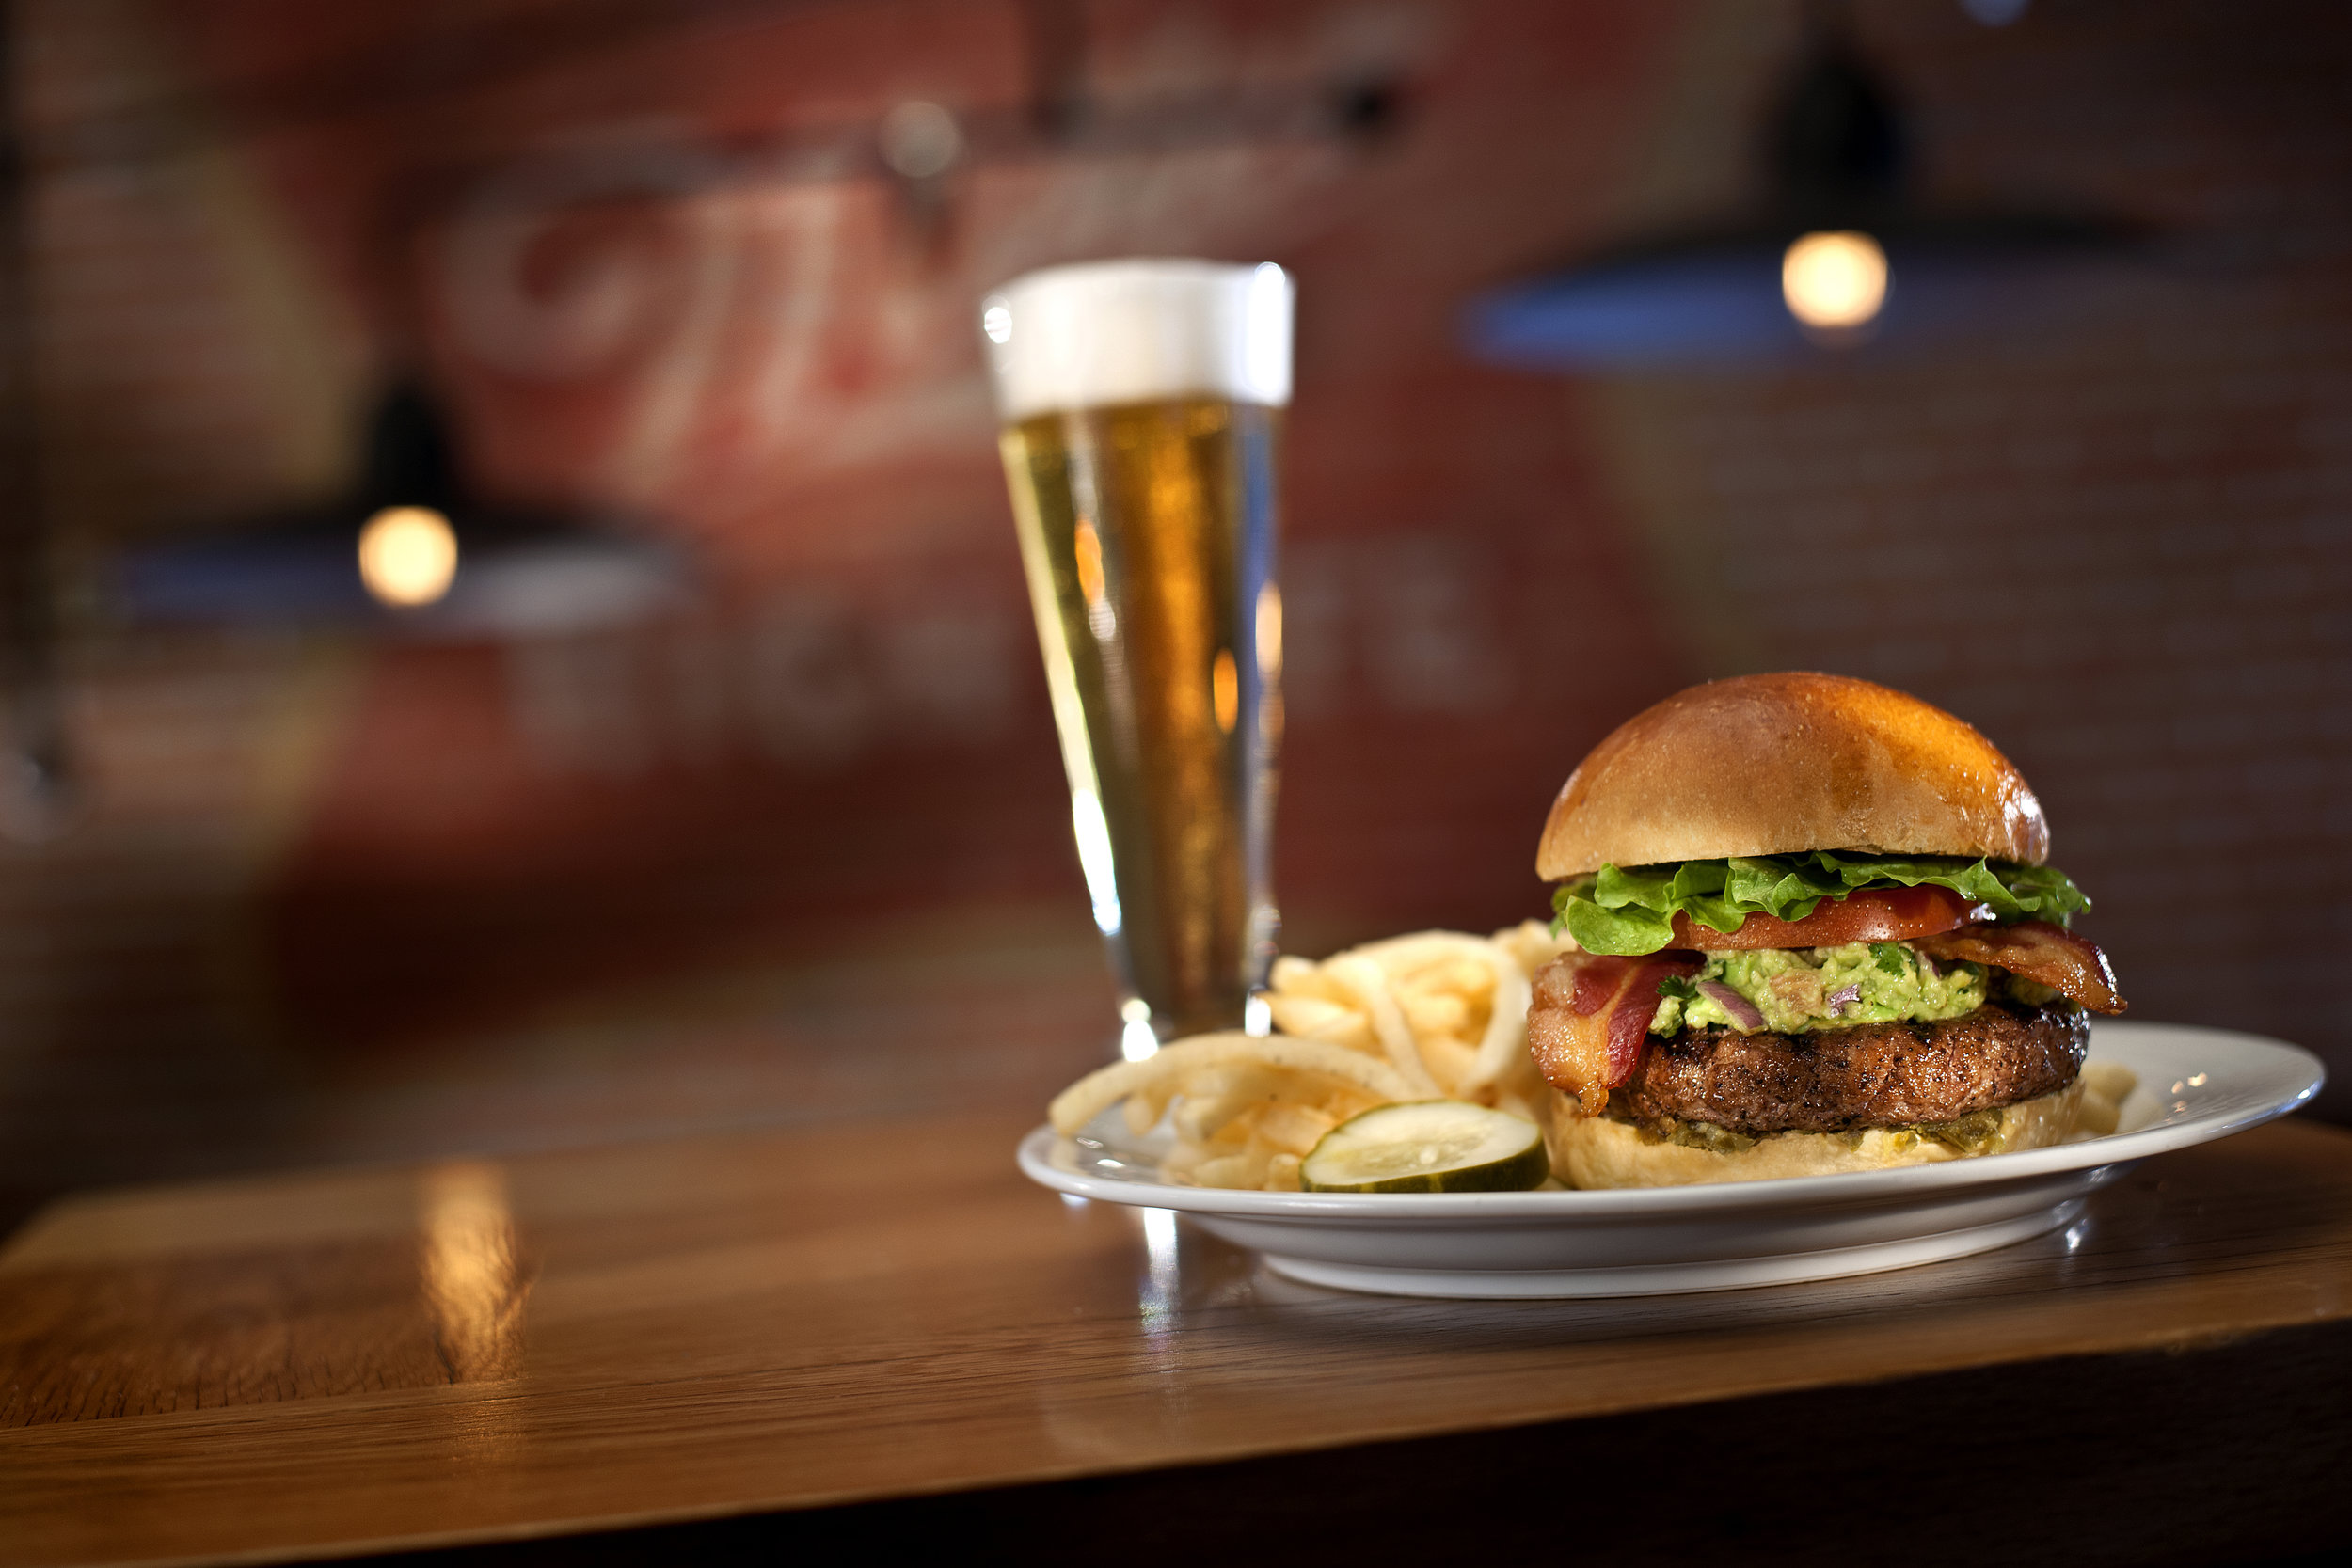 Miller Time Pub is open daily from 11 am - 1 am and offers authentic Milwaukee-brewed Miller Beer along with a delicious menu.